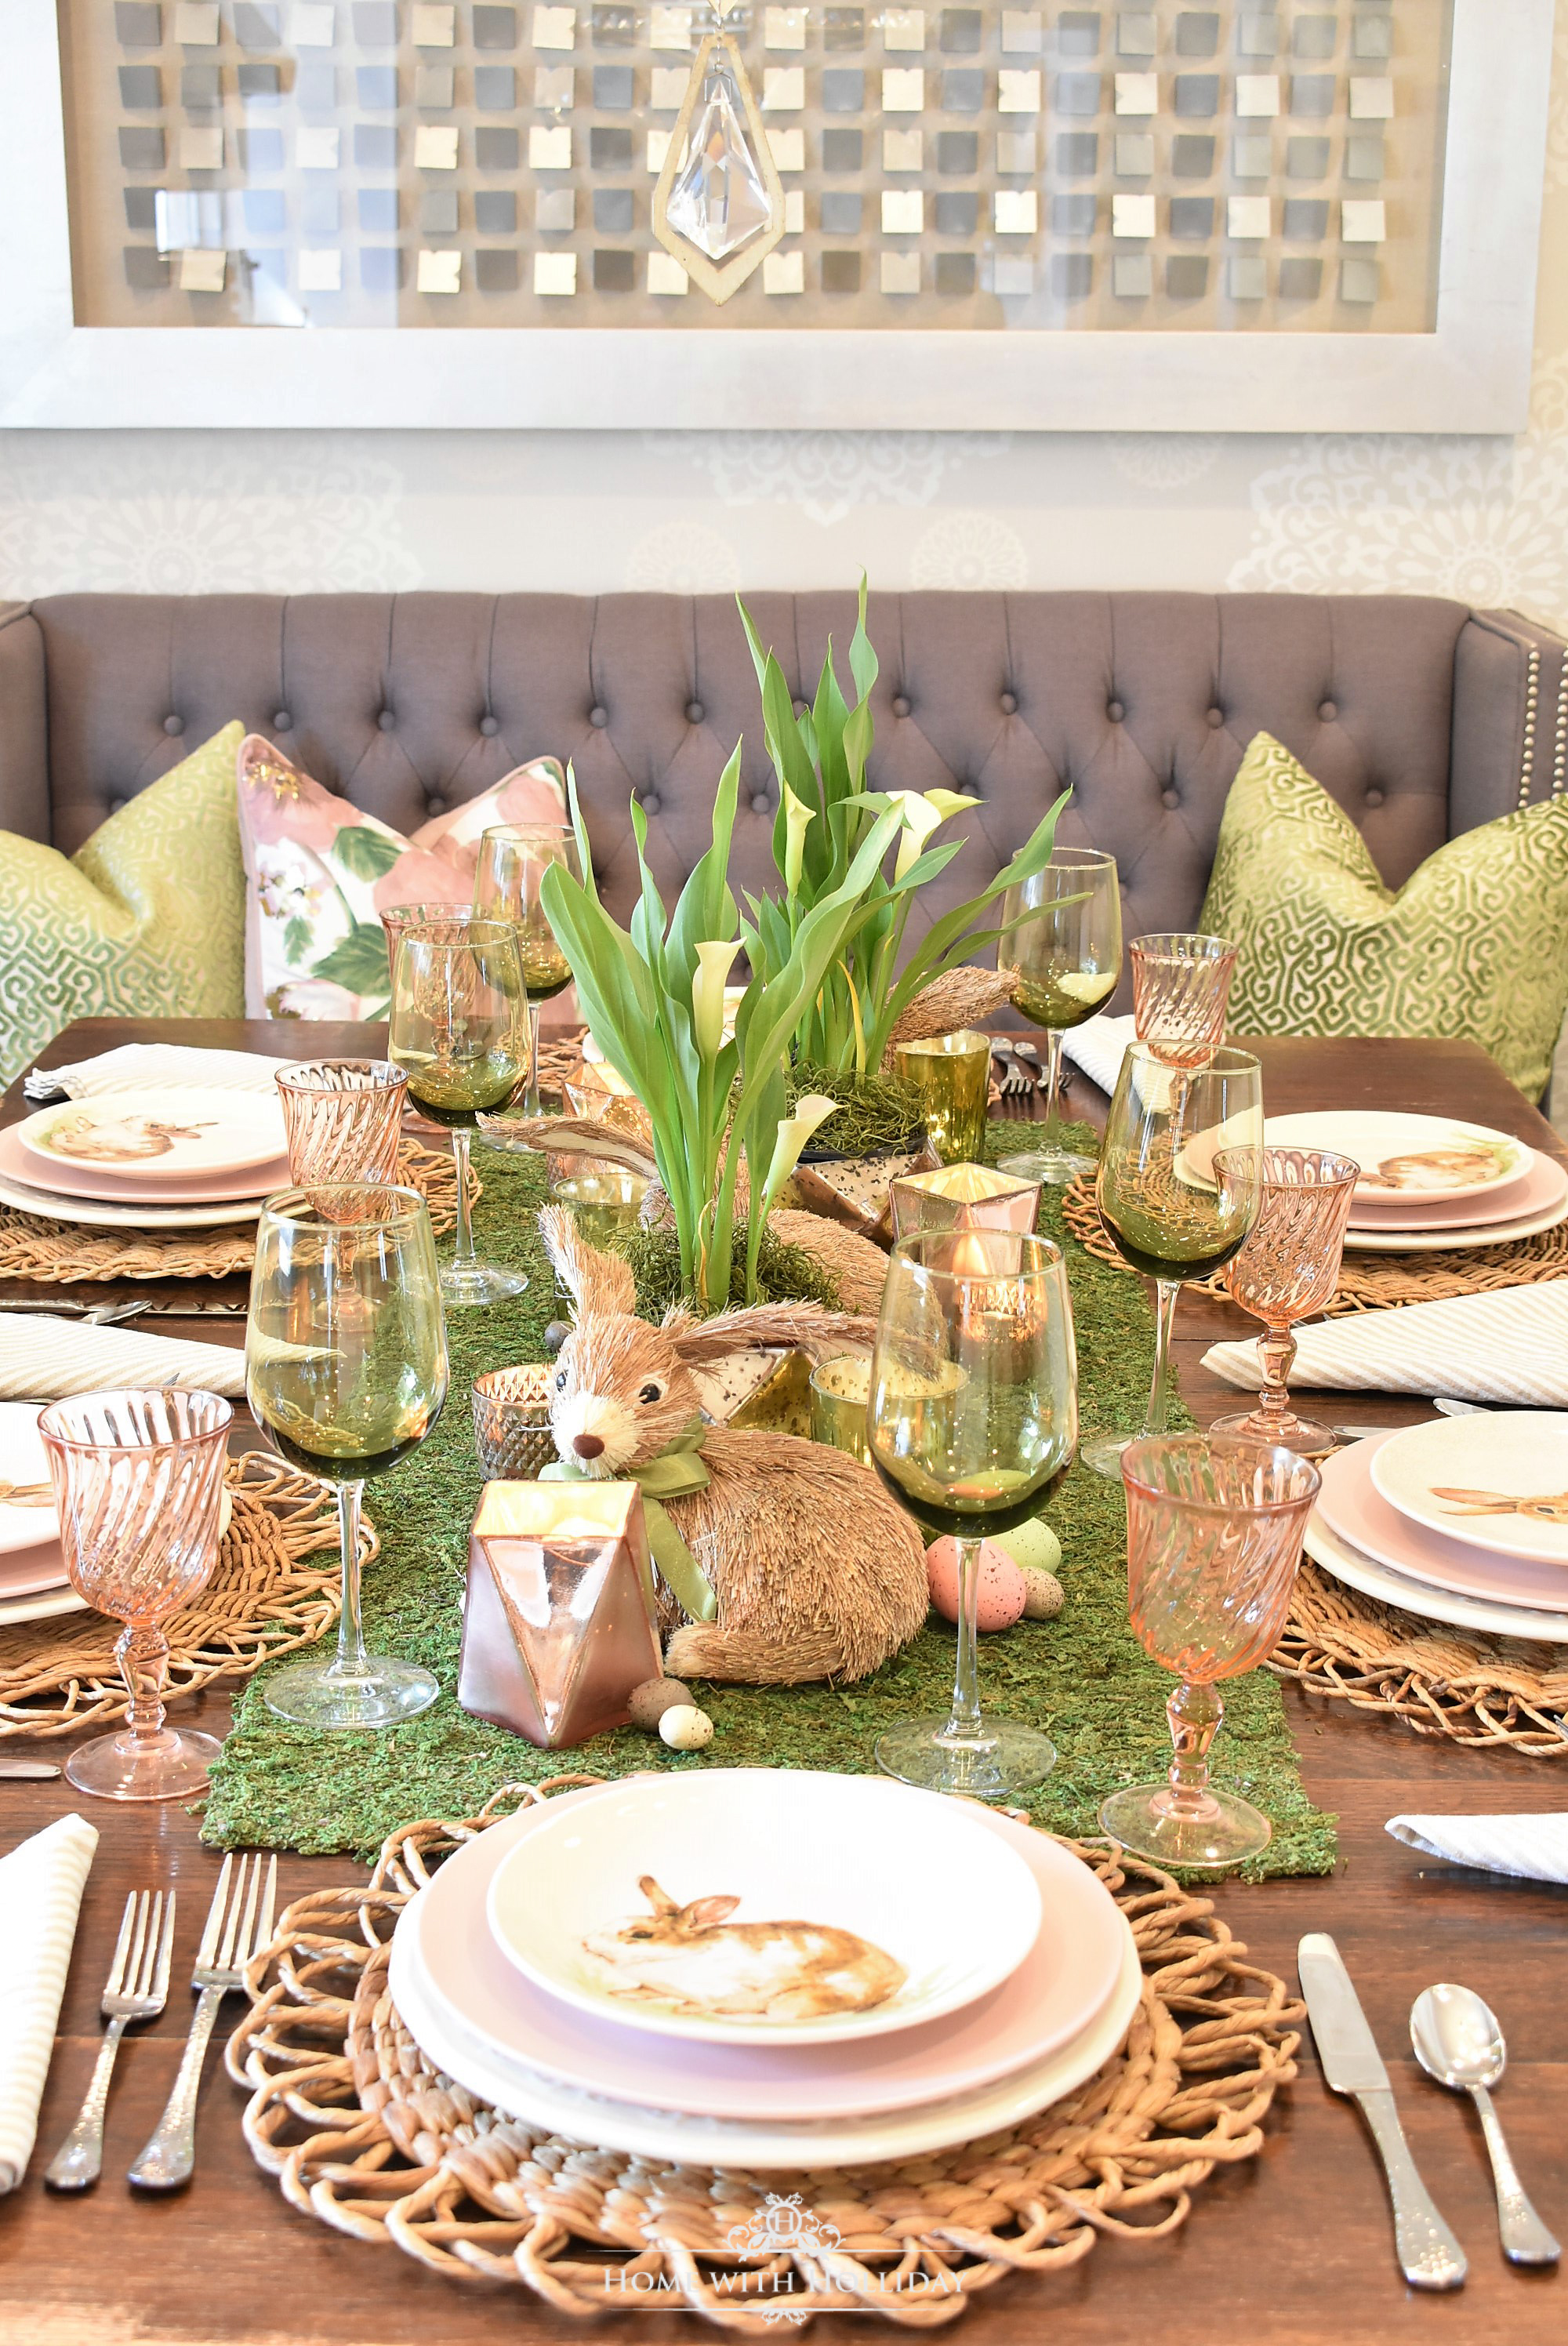 Easter is only about three weeks away so lots of planning is going on around here! We host a large group with kids of all ages (this year ranging from age ... & Green and Blush Pink Easter Table Setting - Home with Holliday